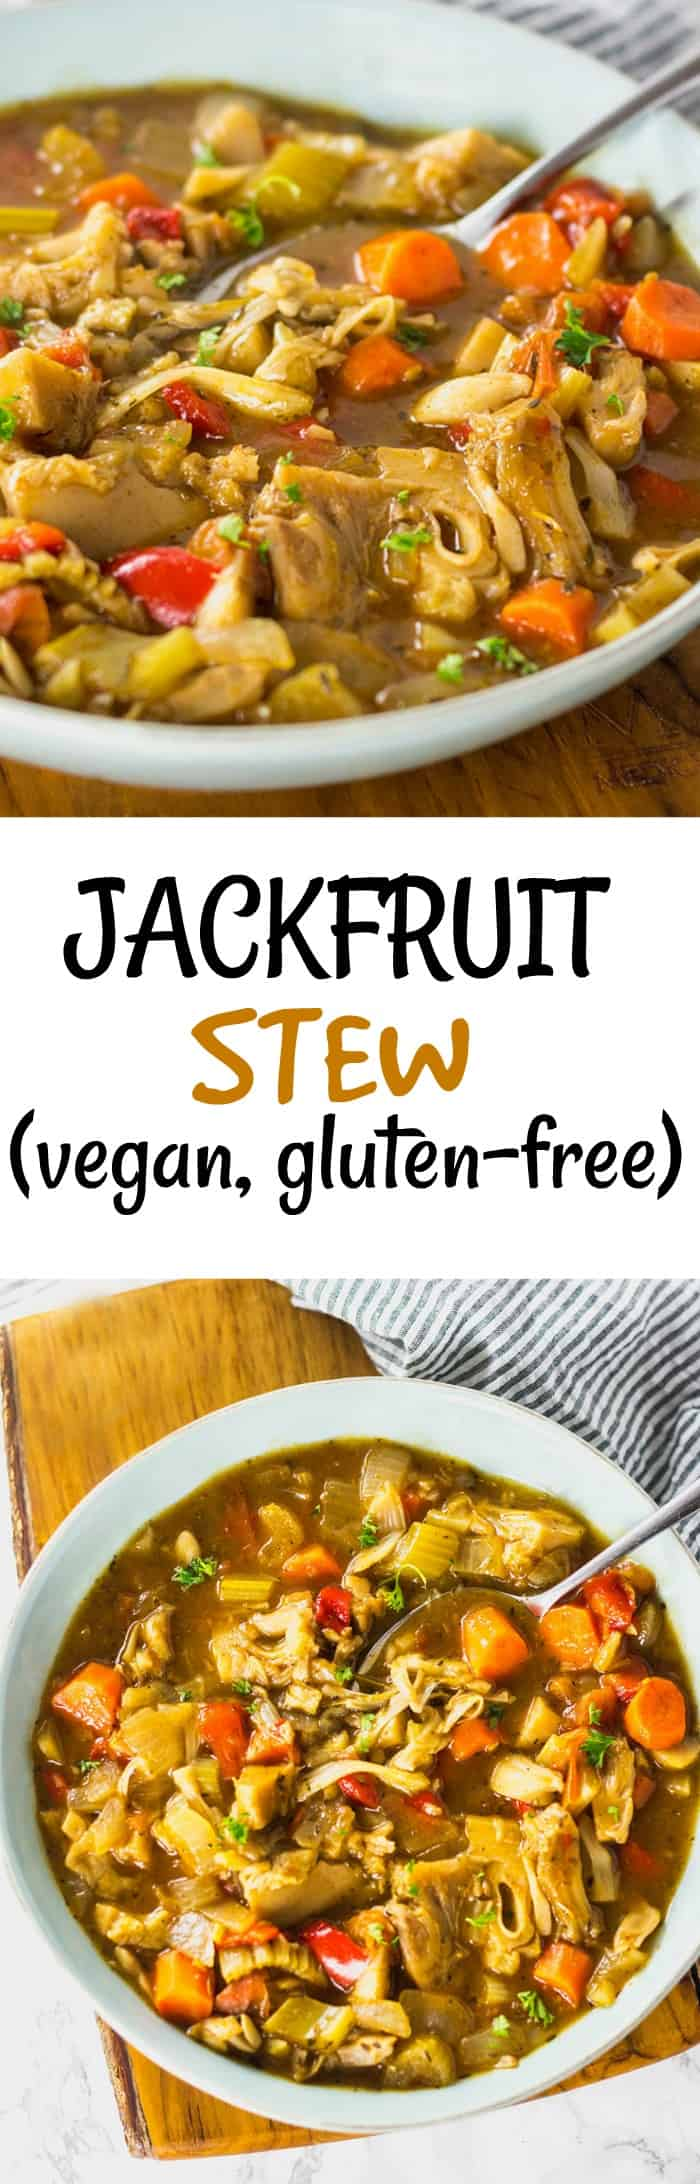 Jackfruit Stew Pin